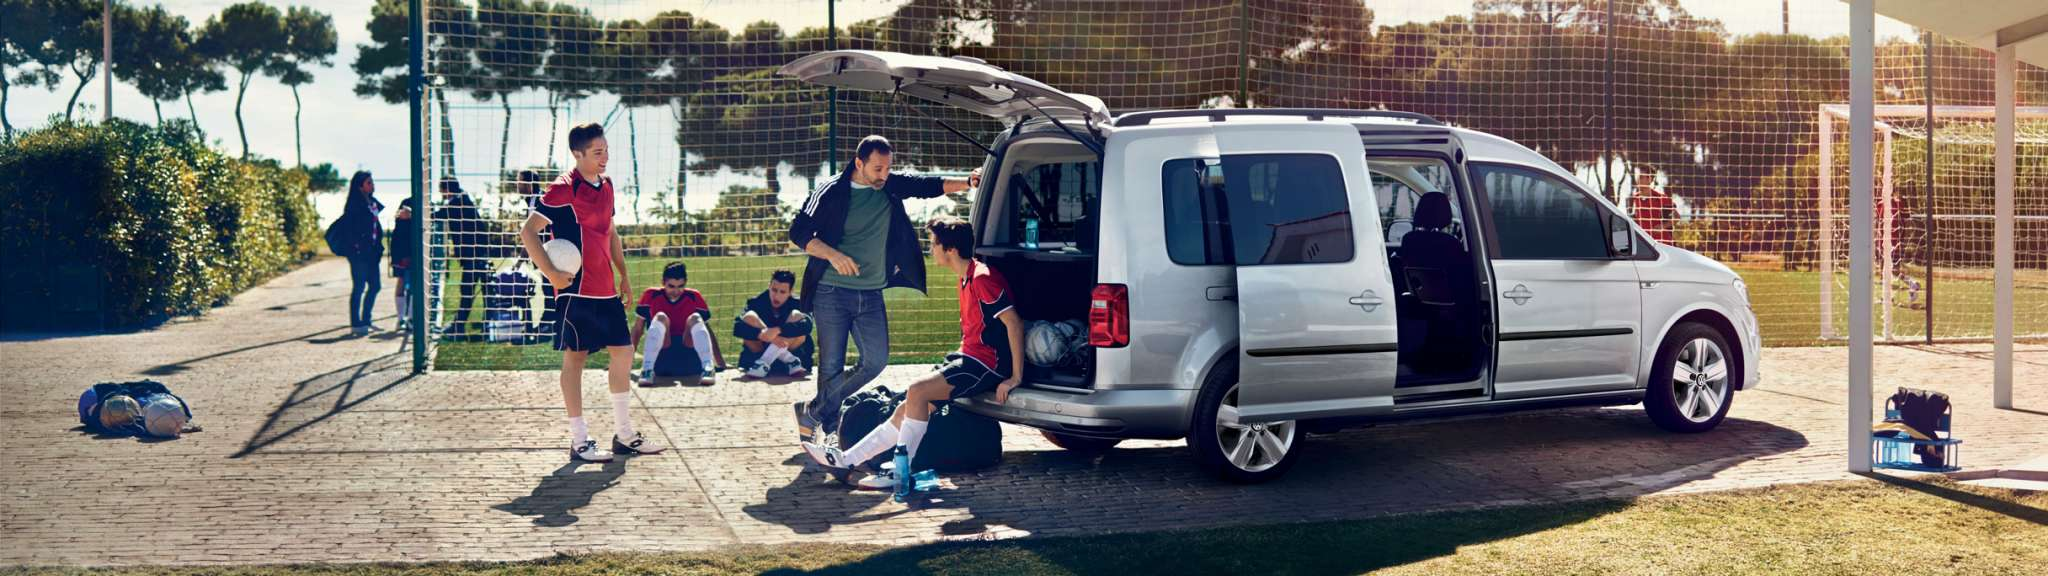 VW Caddy Trendline and Alltrack sports team vehicle image